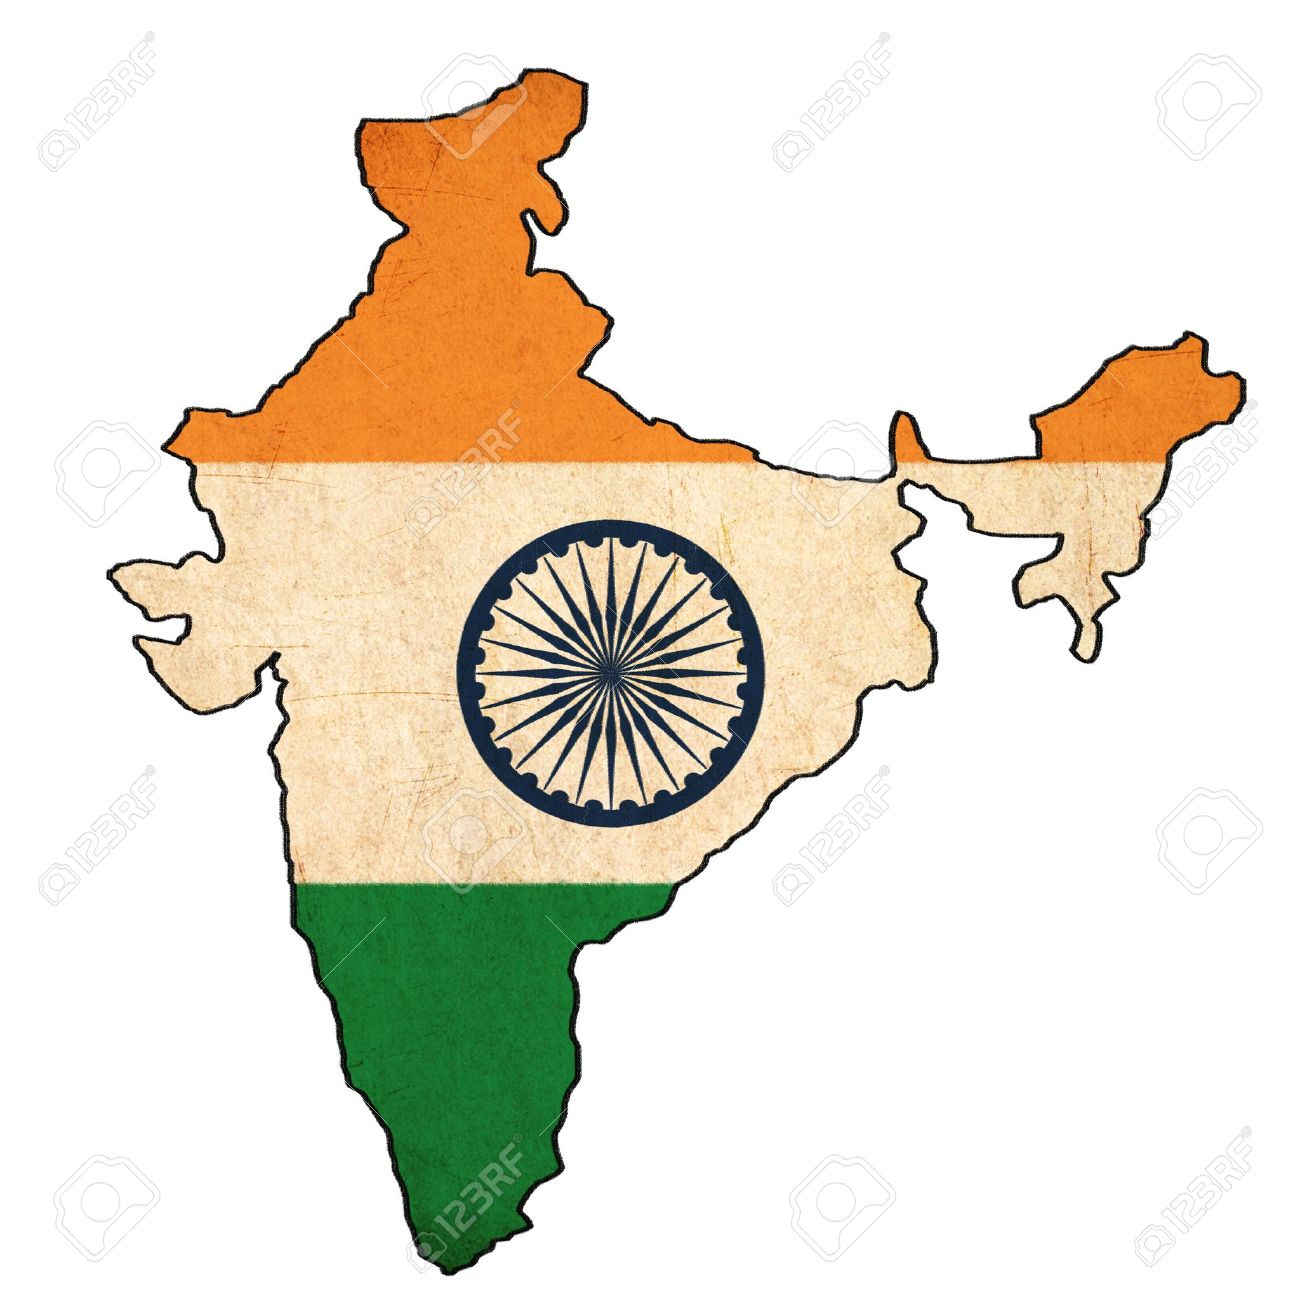 india map on india flag drawing grunge and retro flag series